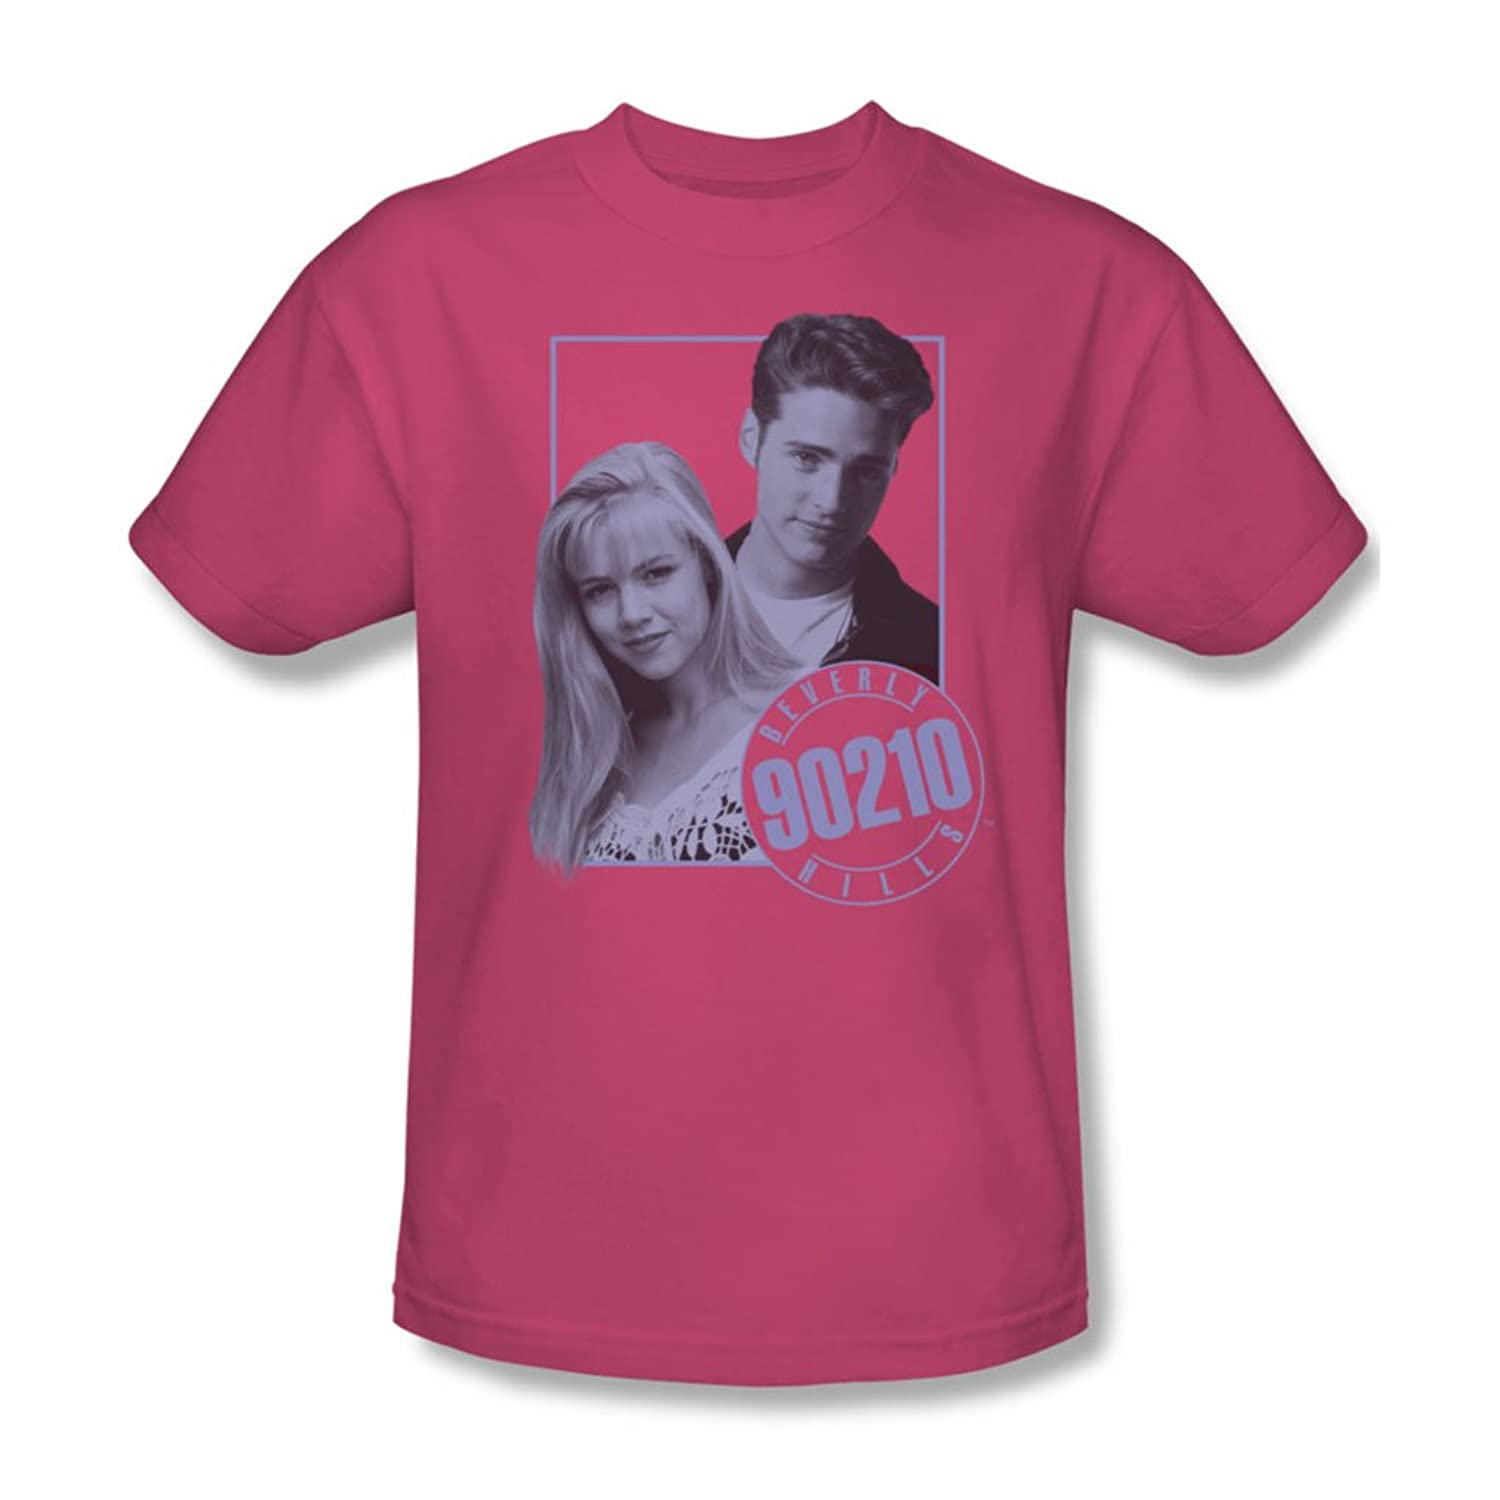 90210 - Mens Brandon & Kelly T-Shirt In Hot Pink